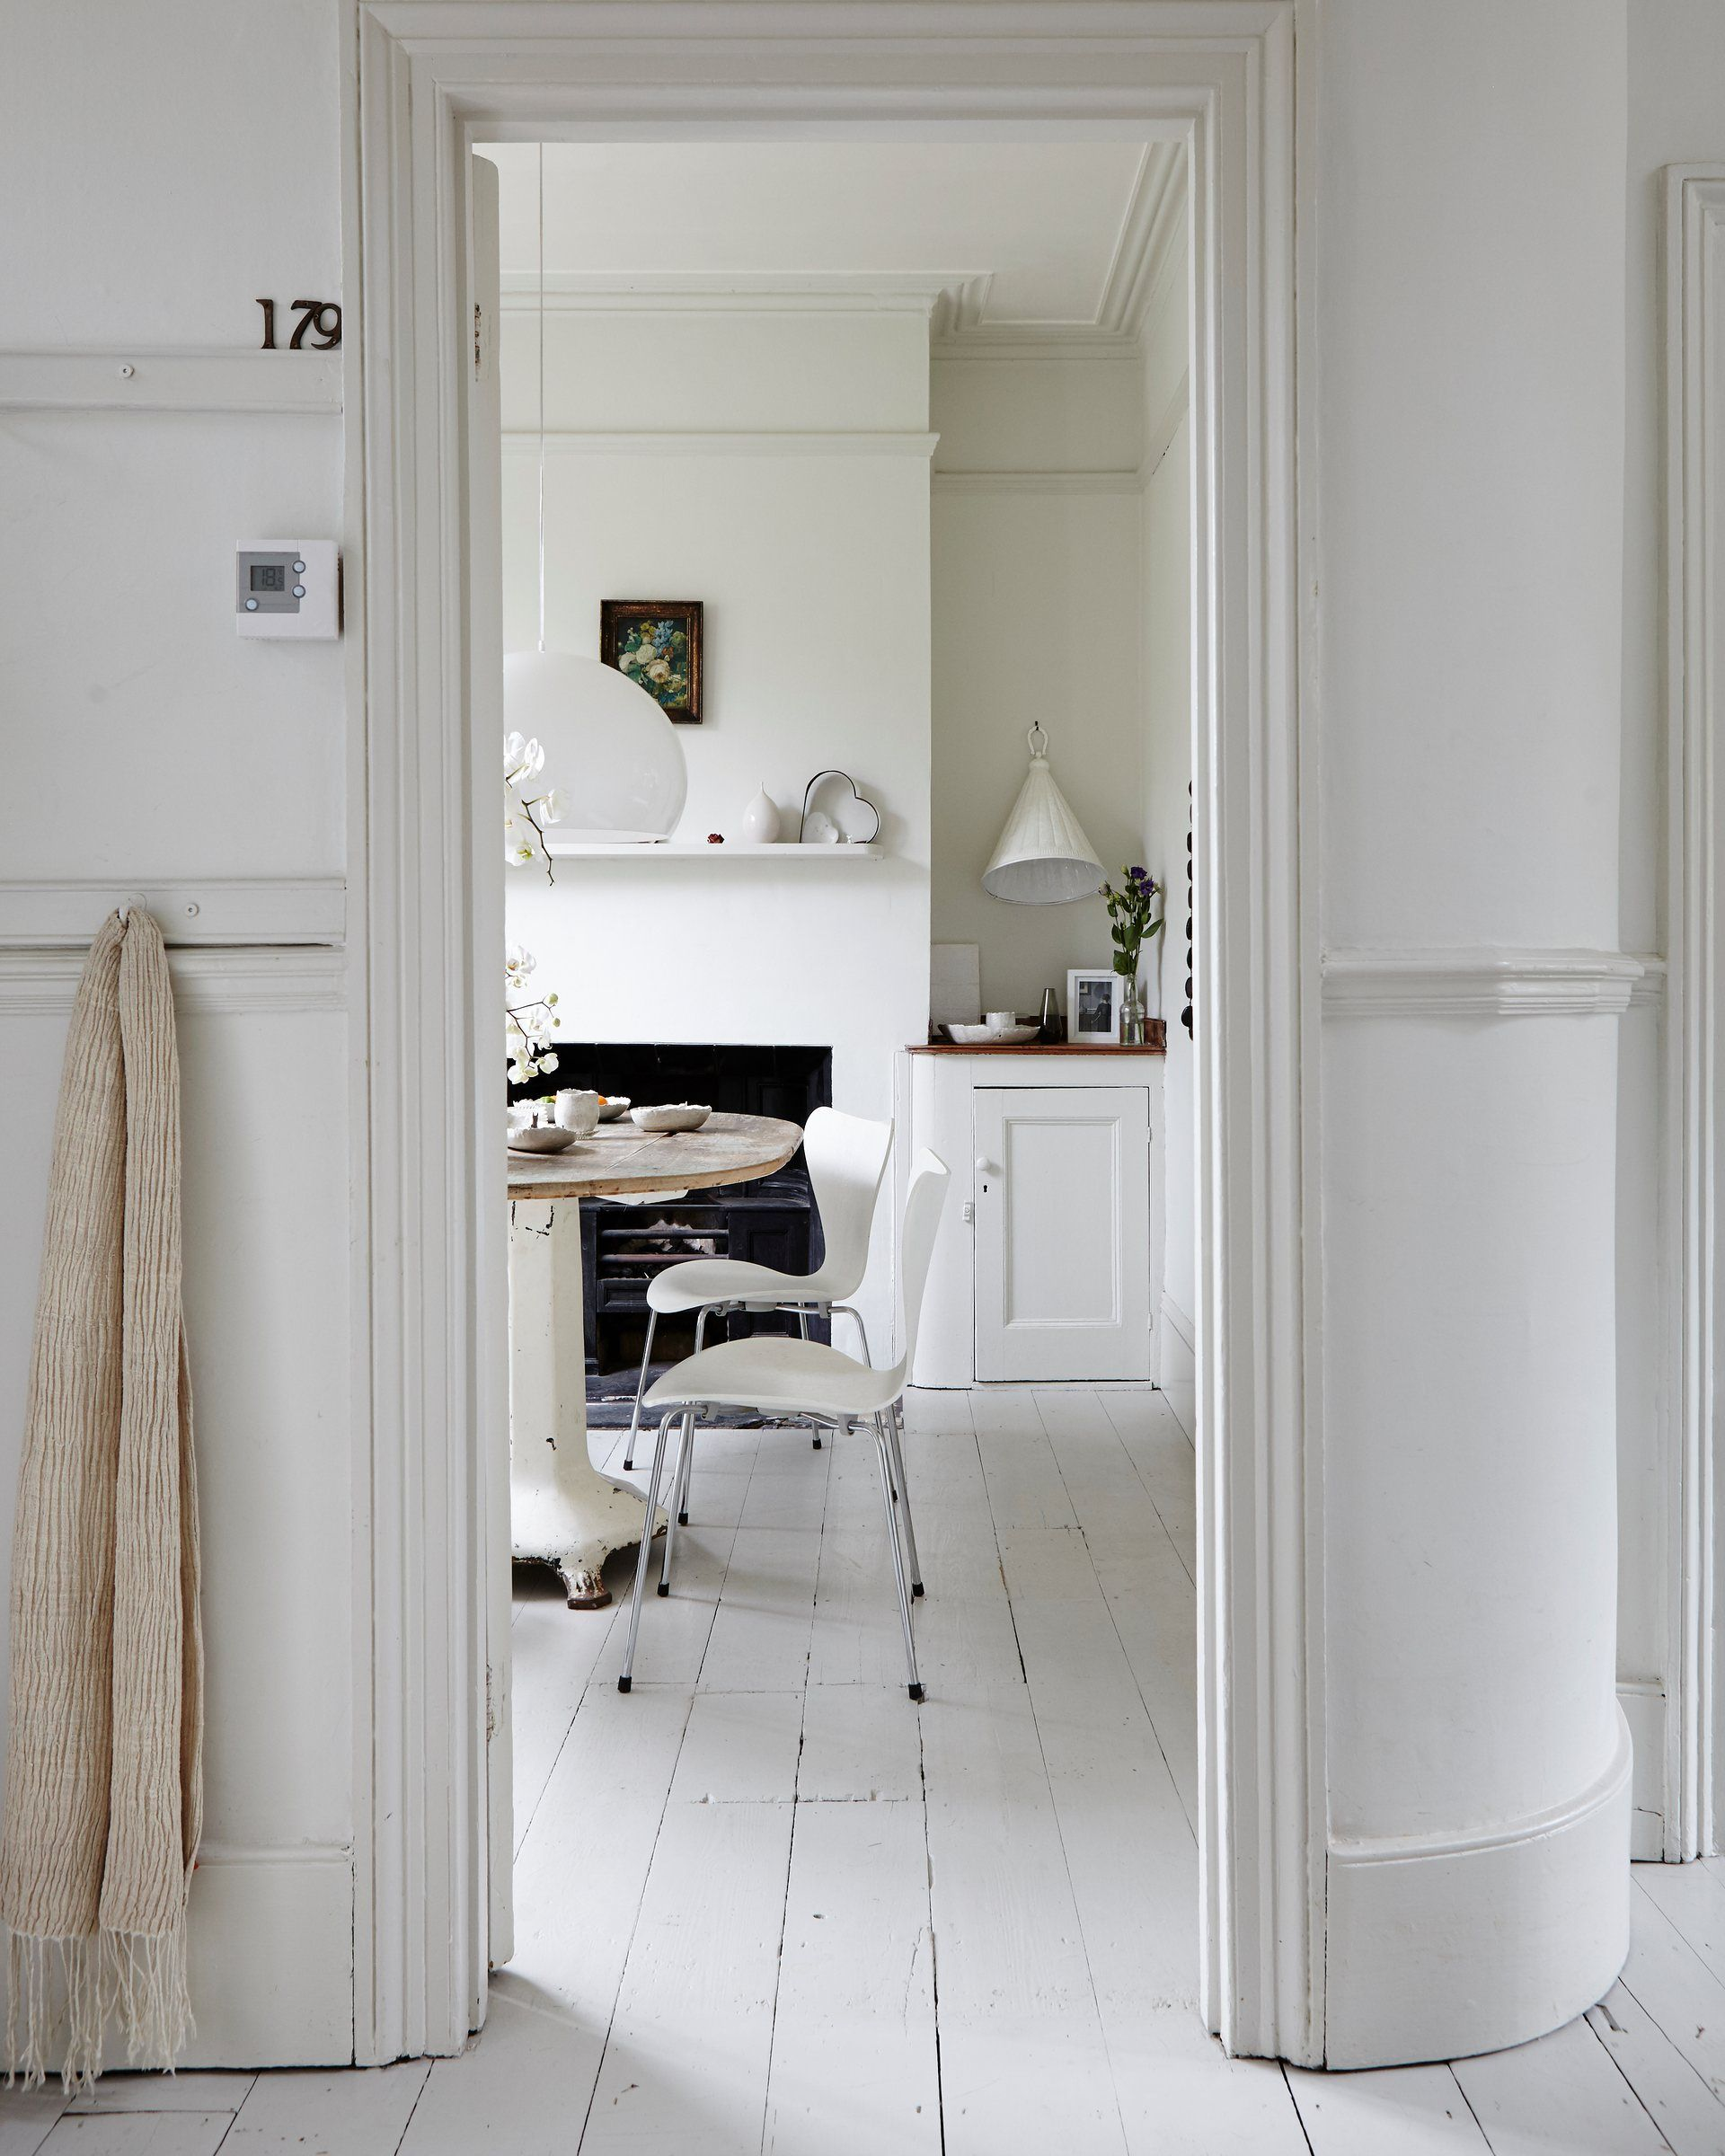 Want a place thats restful and simple then look to the pared back chic